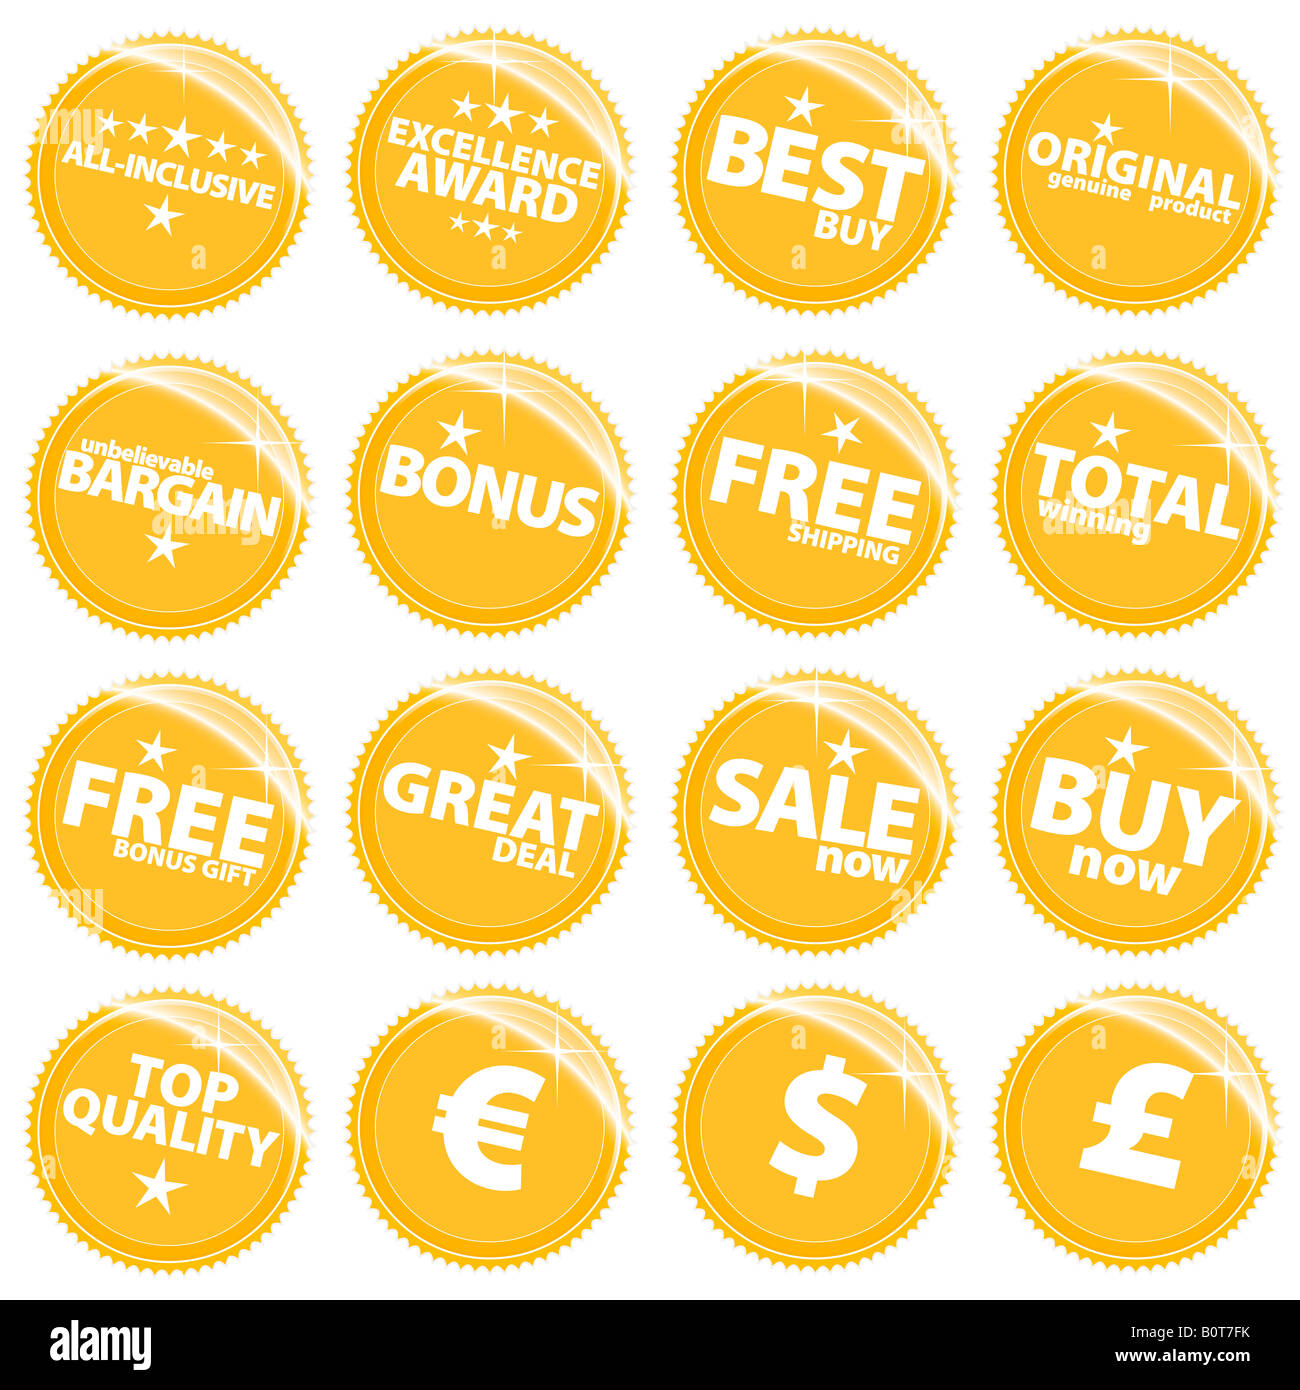 Vector illustration of a set of golden retail web icons tags or stickers with various sale slogans - Stock Image